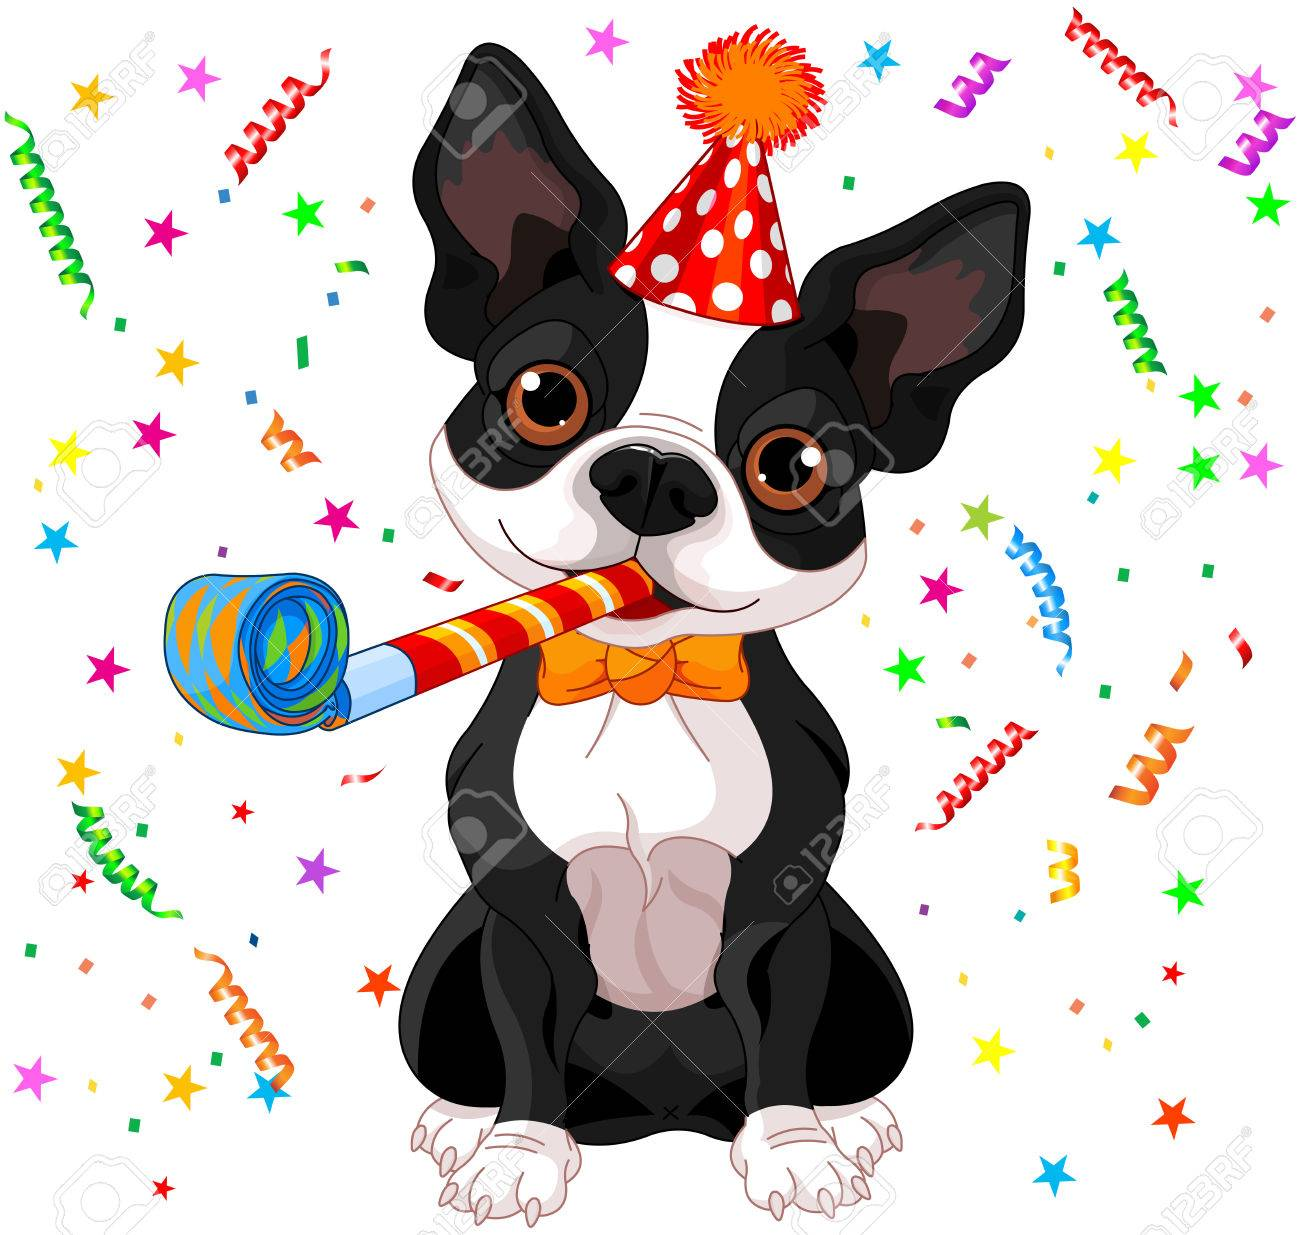 La polyarthrite: le cas de Guizmo 35588778-illustration-of-cute-boston-terrier-celebrating